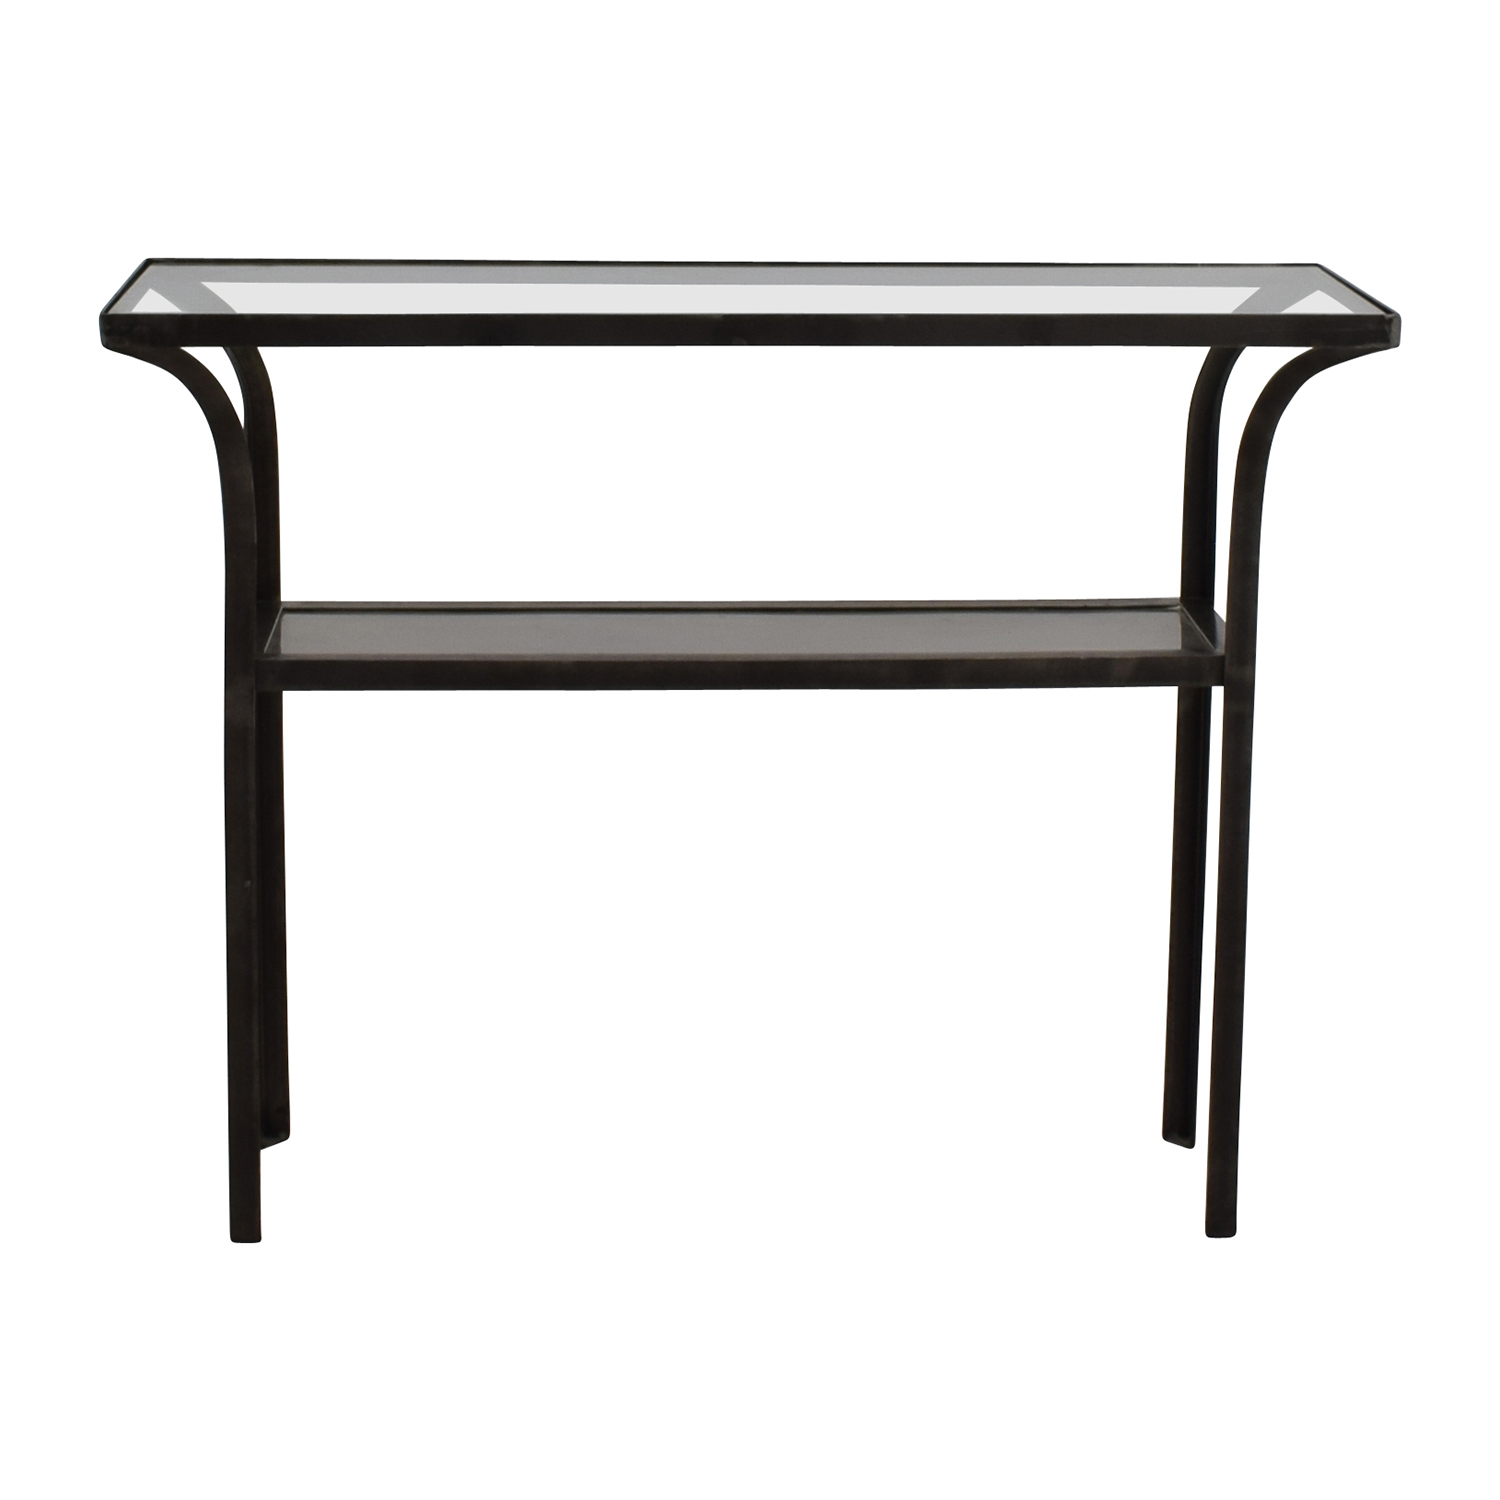 Crate & Barrel Black Glass Console Table / Tables